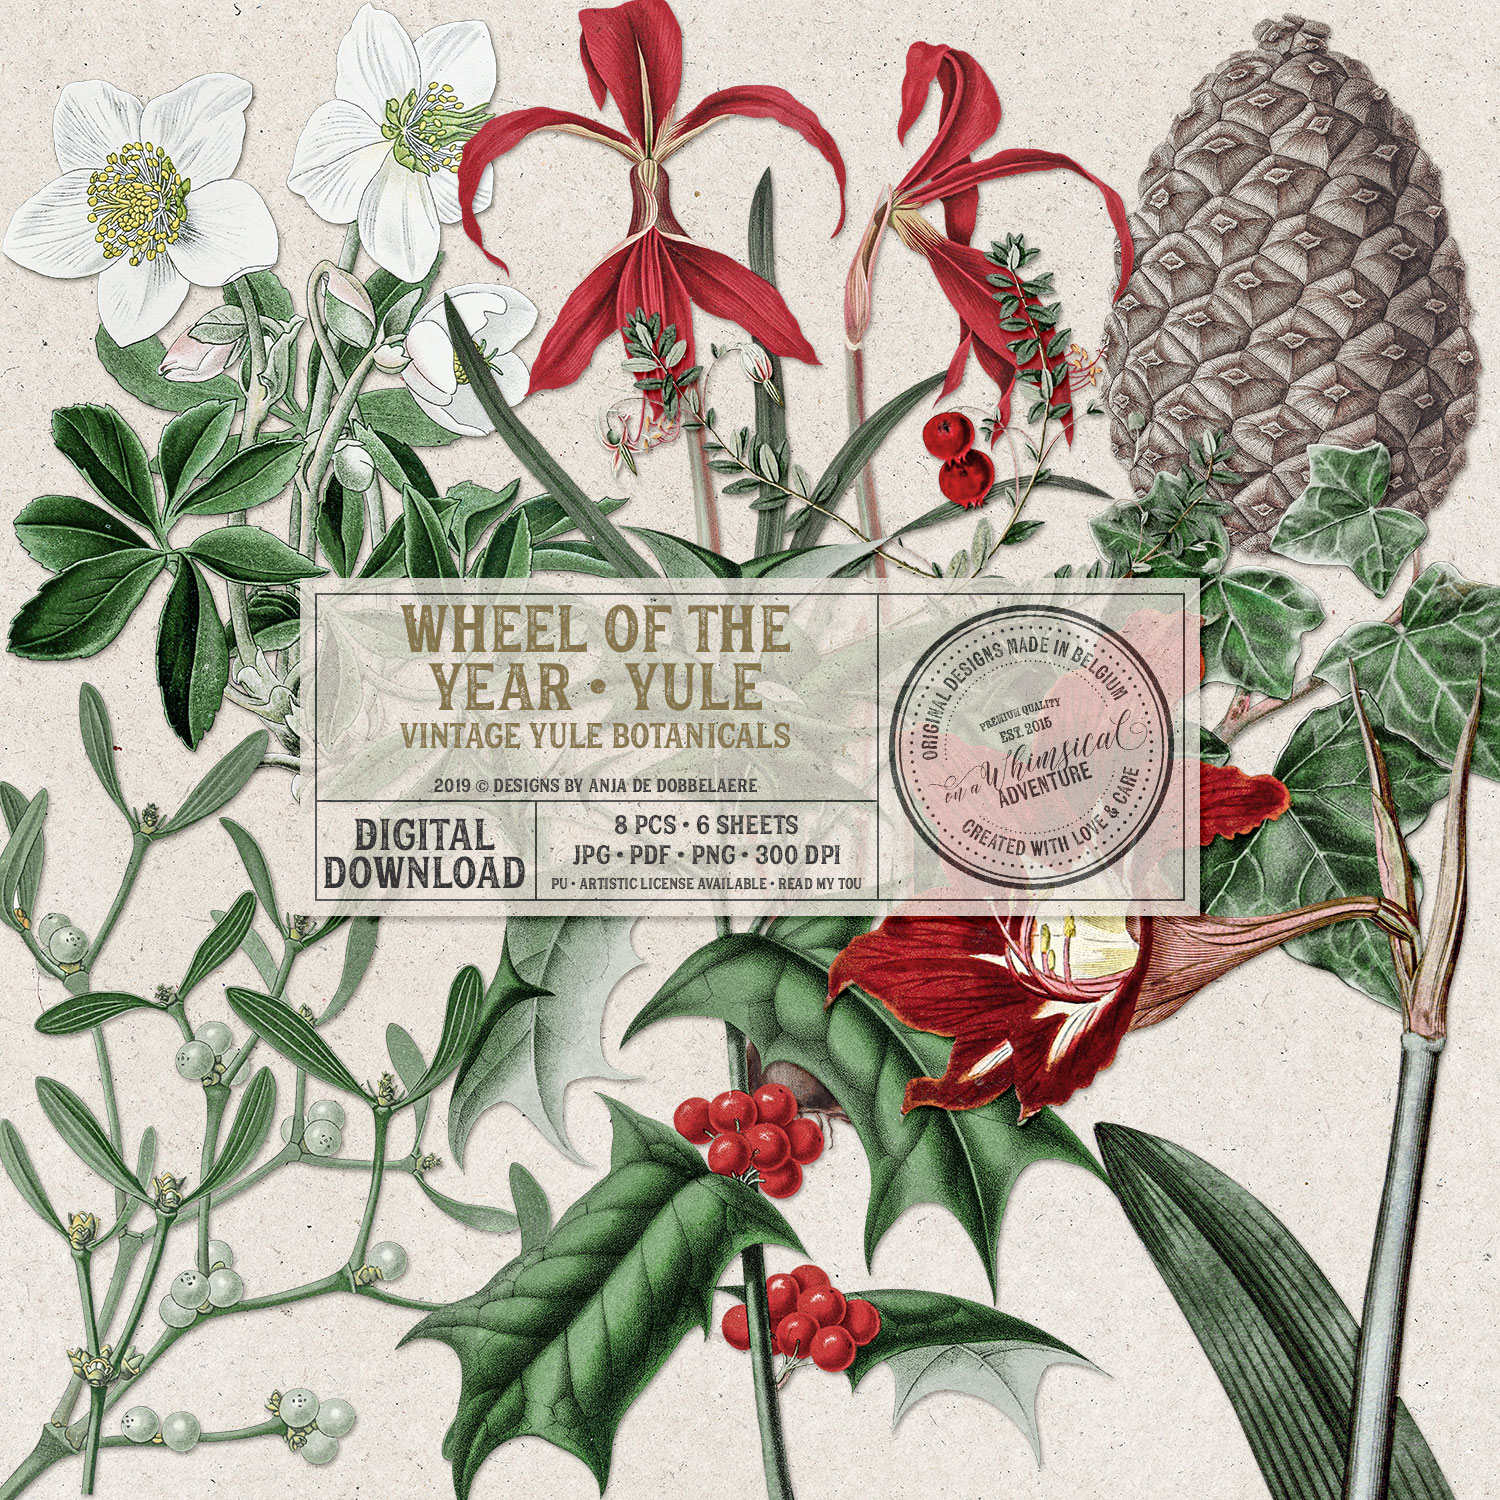 Wheel Of The Year / Yule Vintage Botanicals by On A Whimsical Adventure